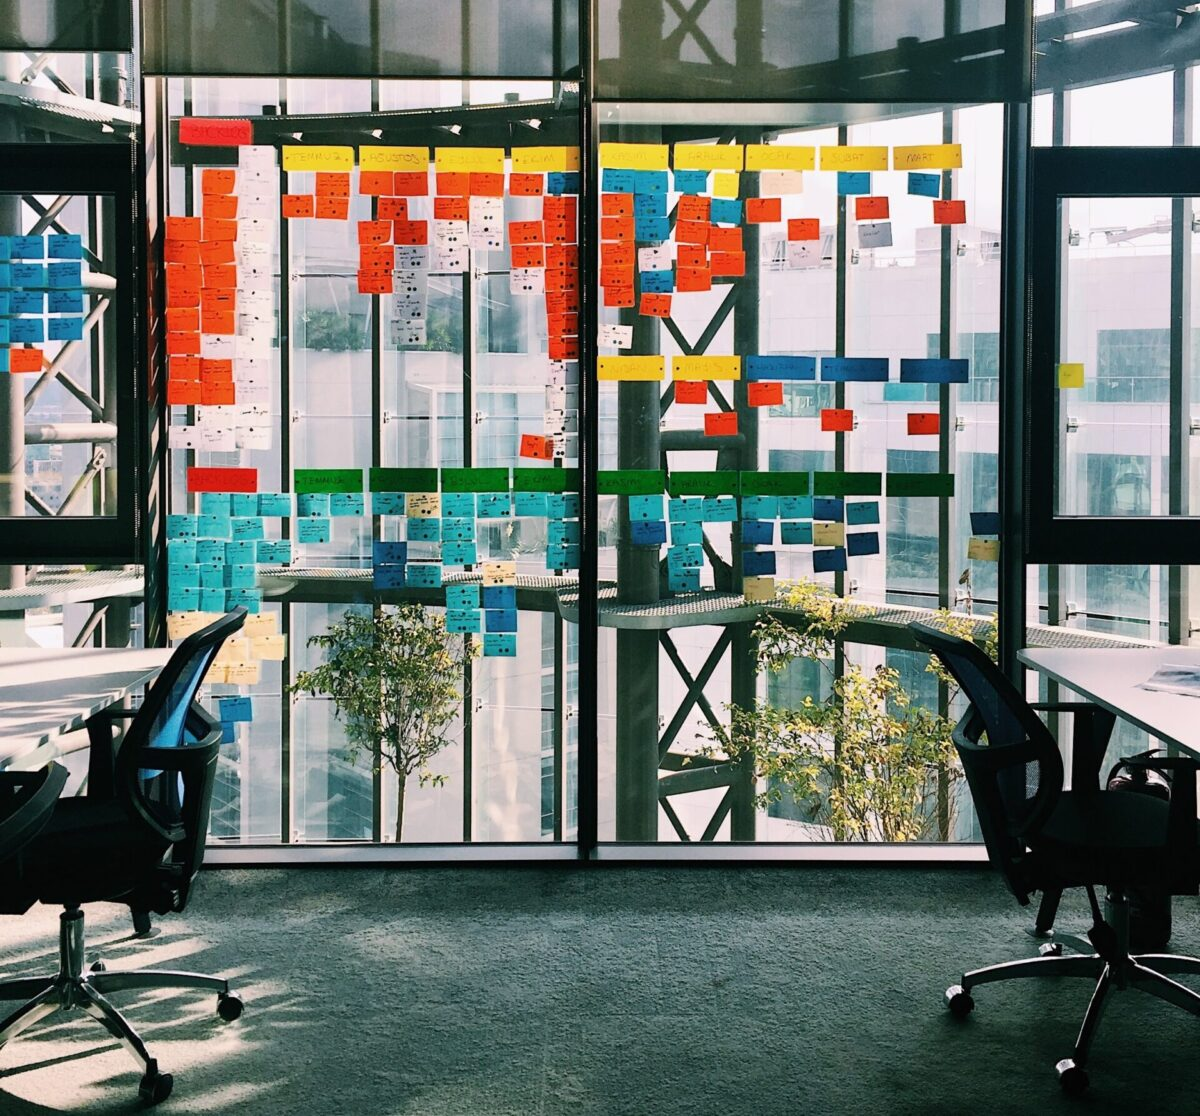 Picture of an agile planning board on the window of an office building